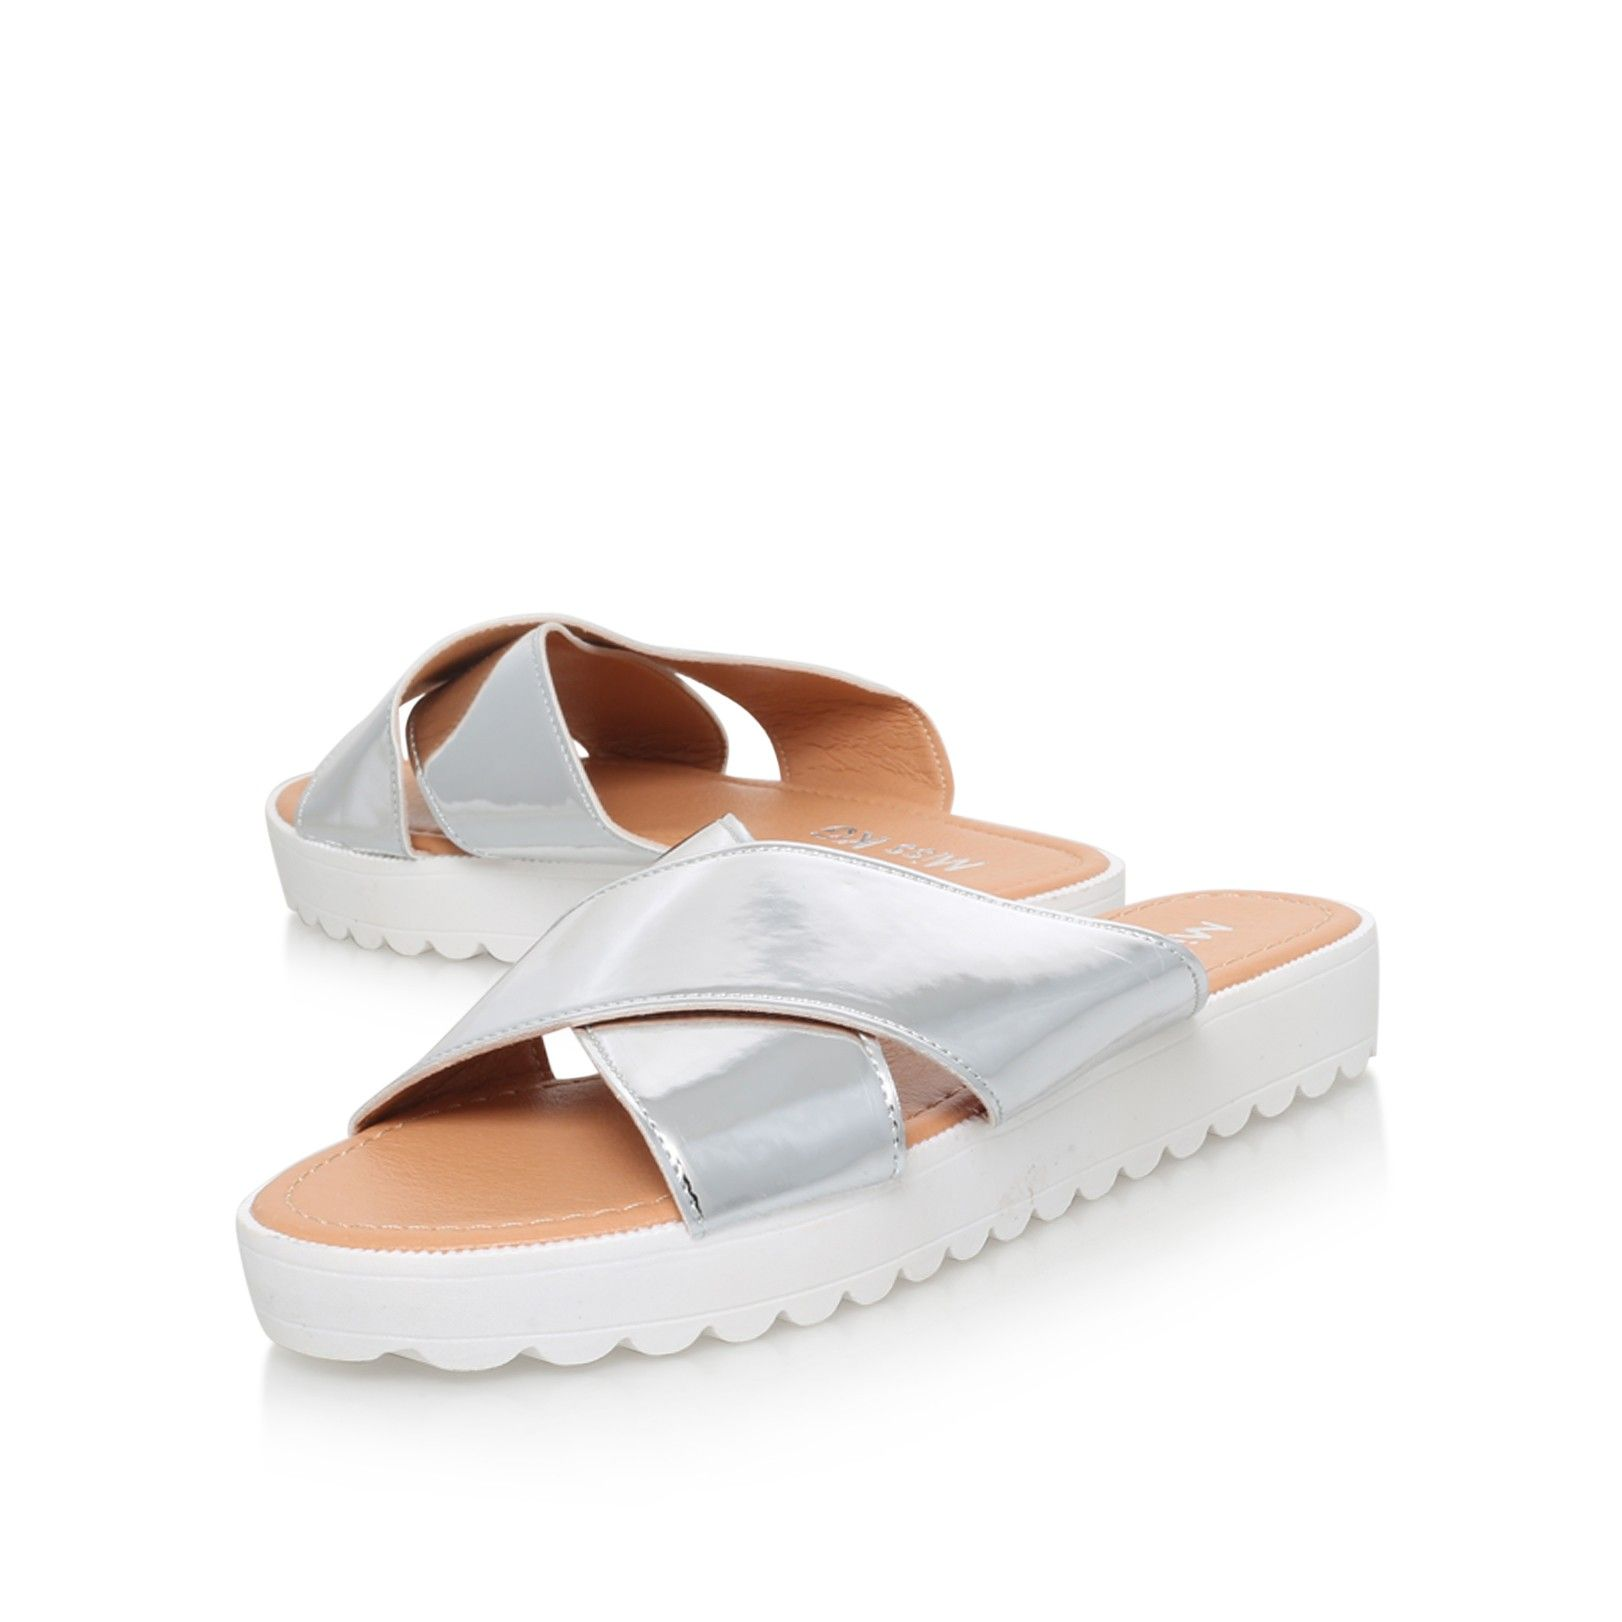 deion silver flat sandals from Miss KG